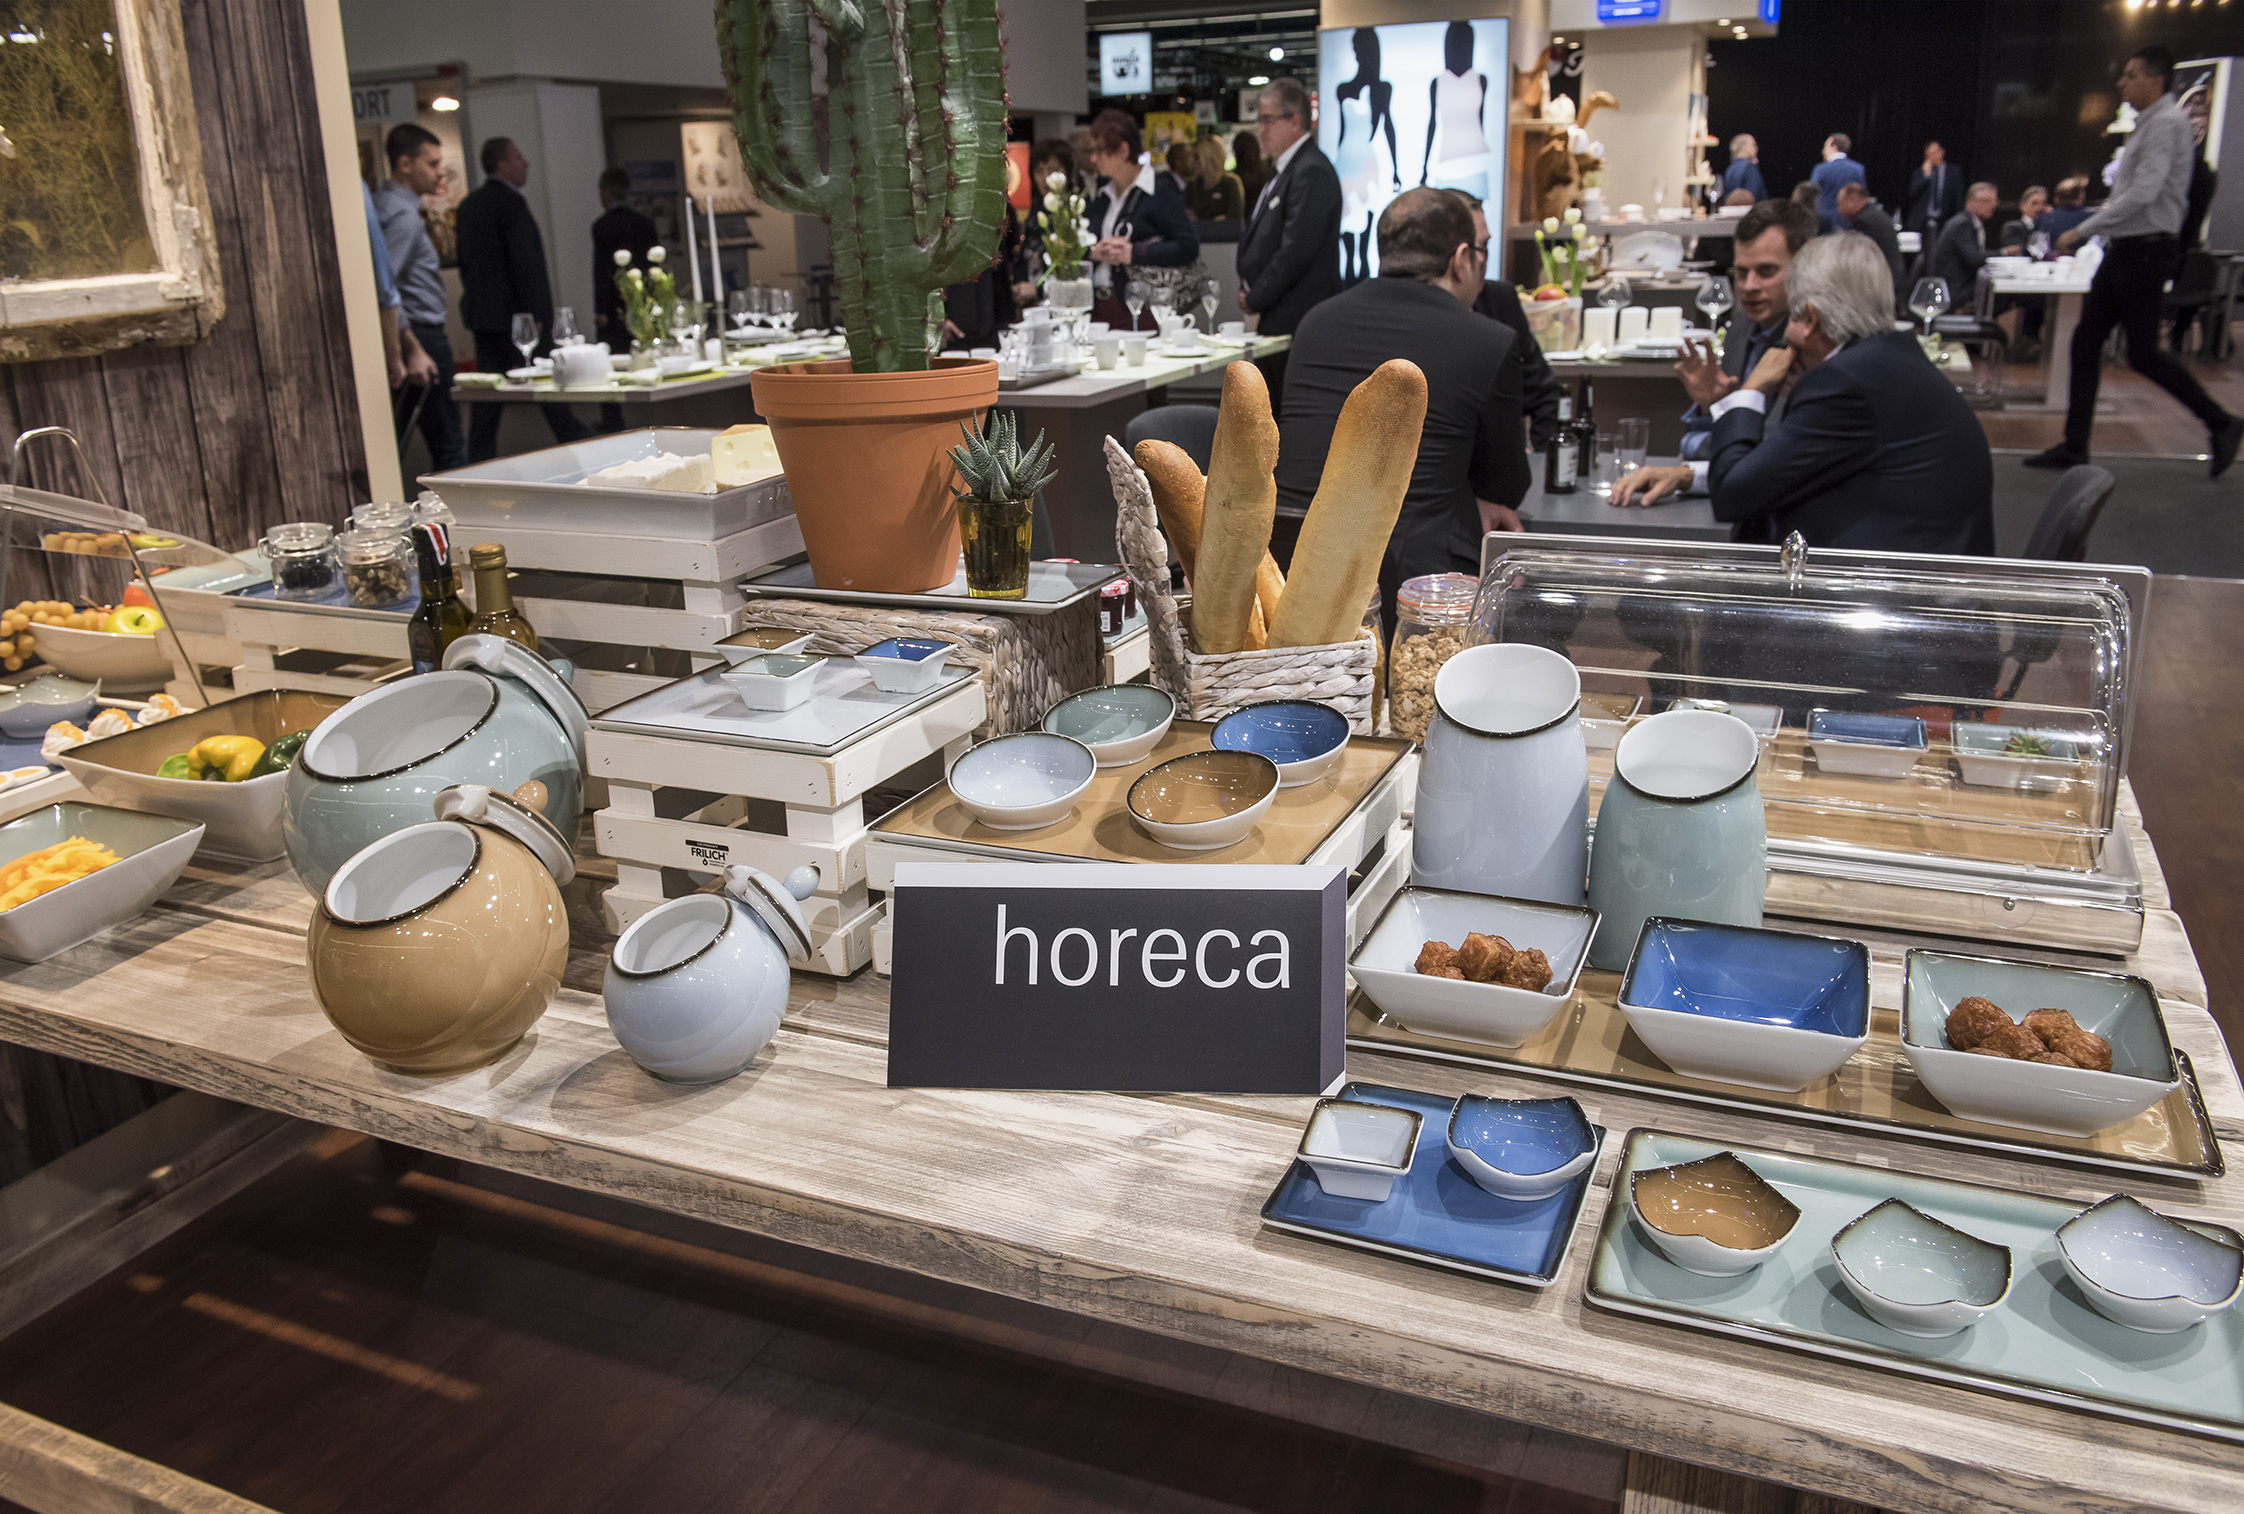 Ambiente 2018: HoReCa products at the Seltmann Weiden Hotel stand in Hall 4.2.